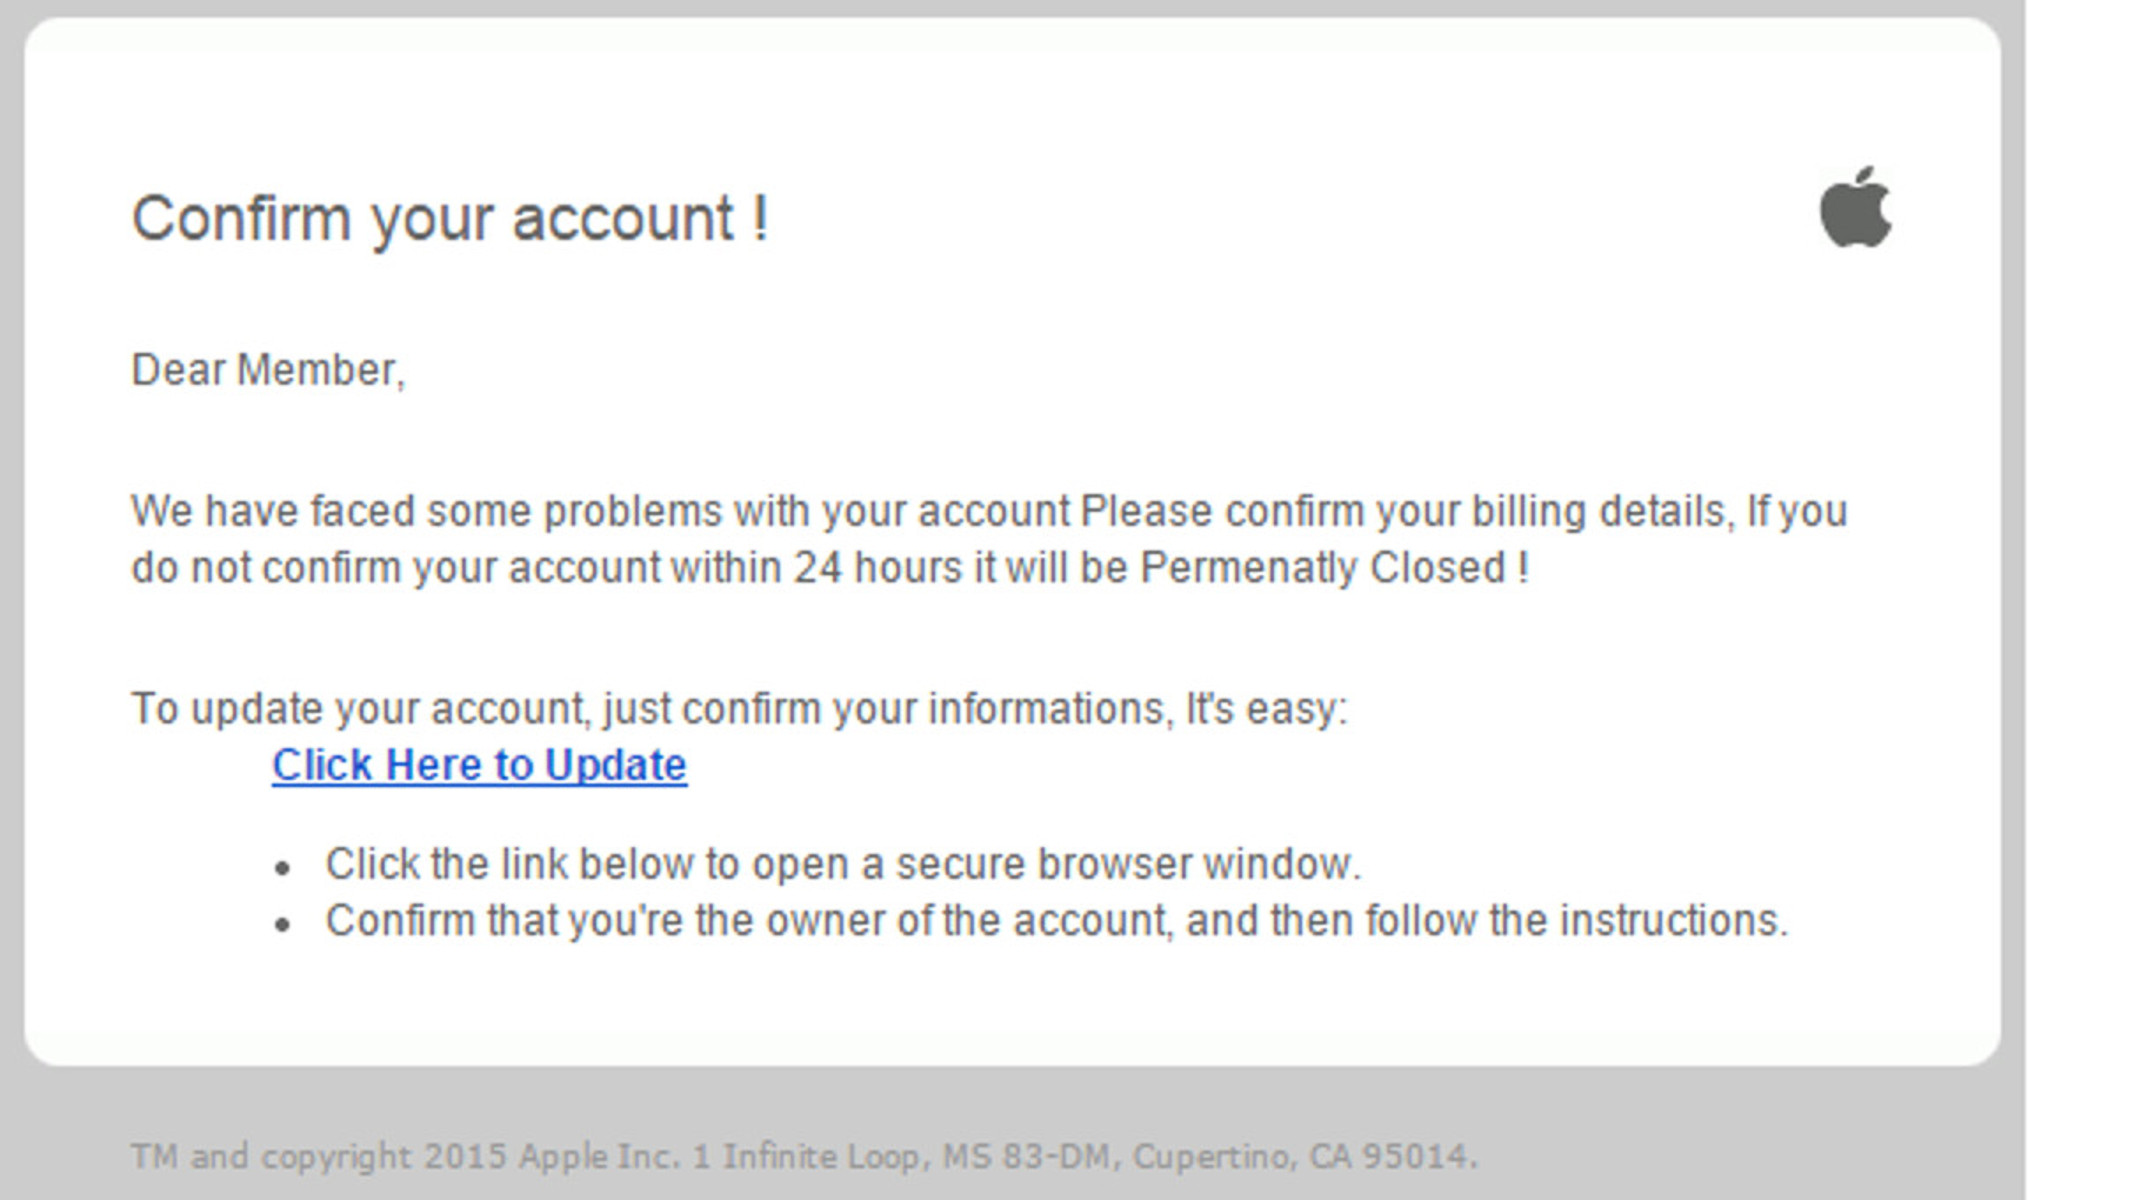 MailShark Confirm account phishing email begins